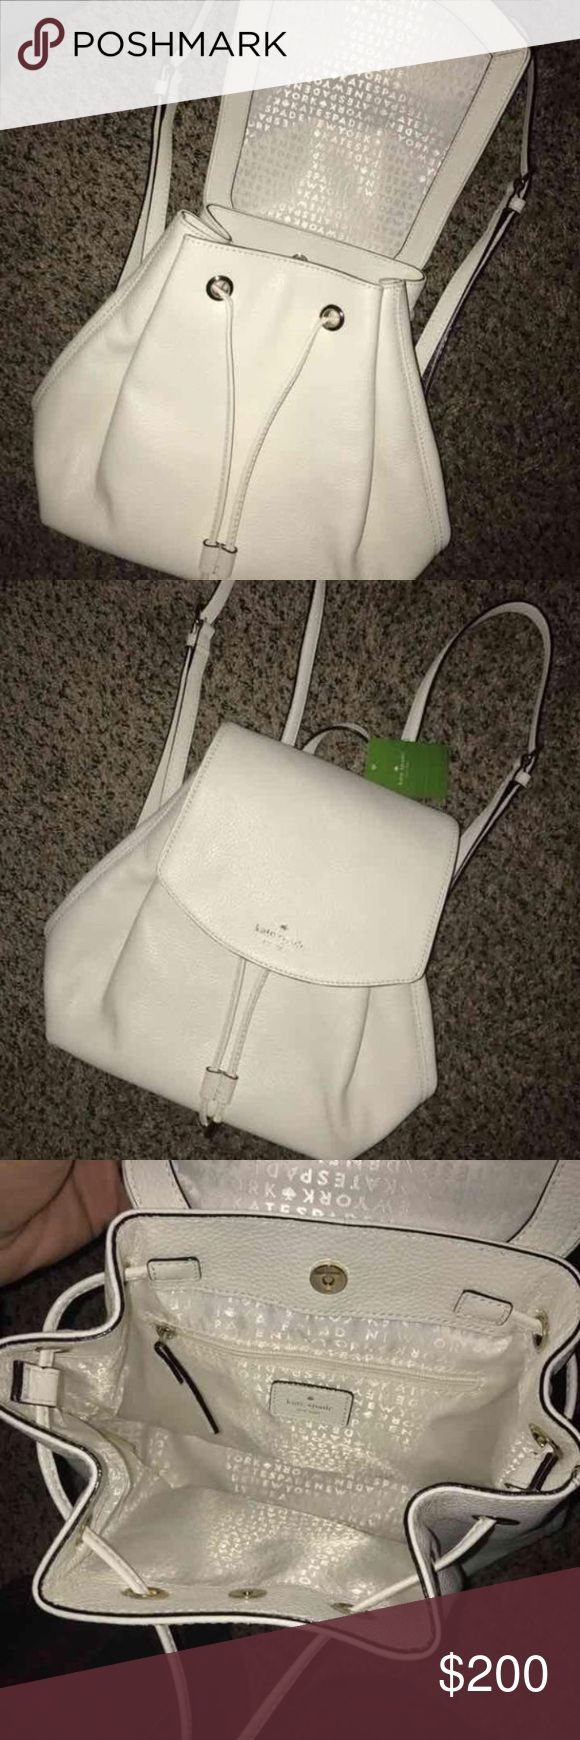 NWT Kate Spade Backpack ♠️ SALE UNTIL MIDNIGHT NWT. Purchased for $330 at the Kate Spade store. Small Breezy Mulberry Street. No trades or low offers pls! Lower on Ⓜ️ kate spade Bags Backpacks